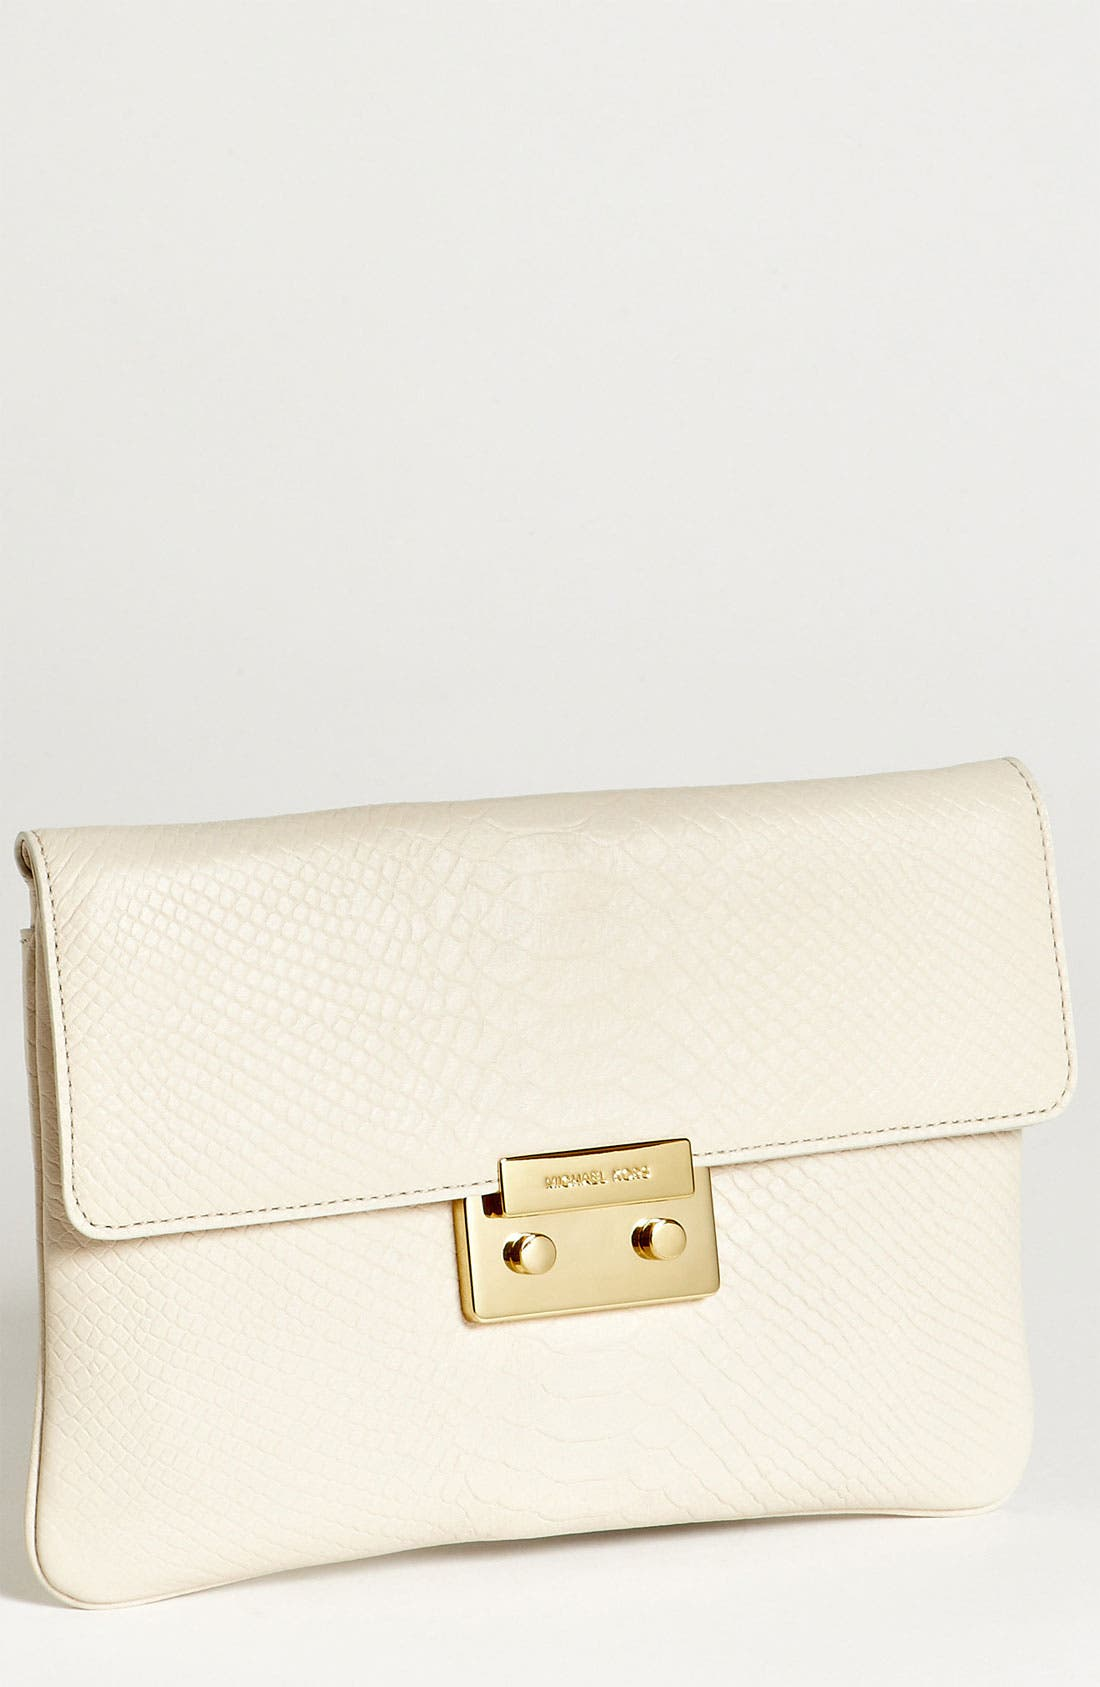 Main Image - MICHAEL Michael Kors 'Sloan' Snake Embossed Leather Clutch